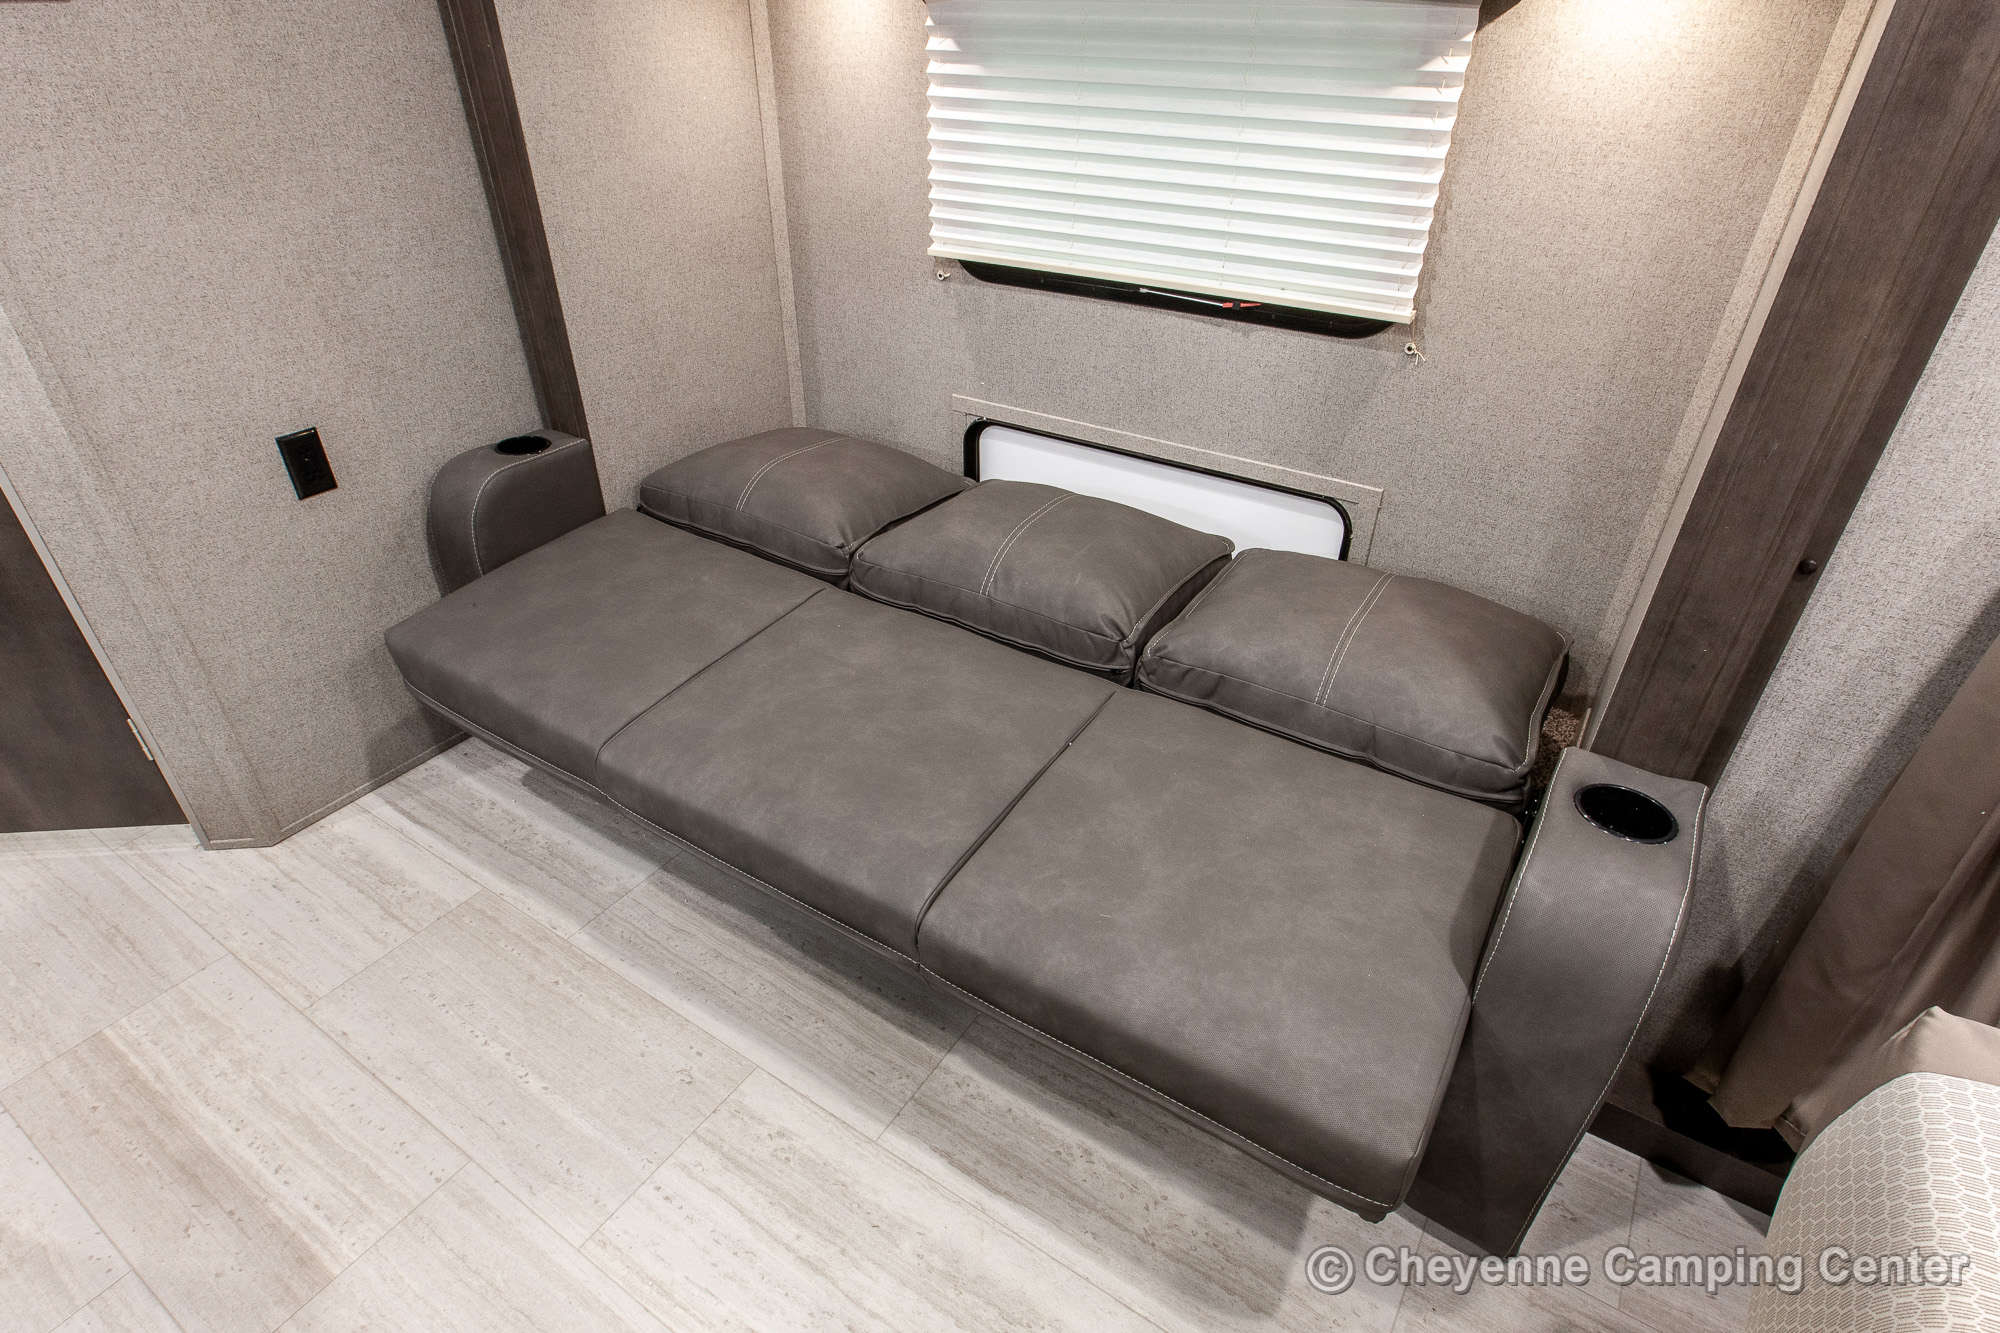 2021 Forest River Flagstaff Micro Lite 21FBRS Travel Trailer Interior Image